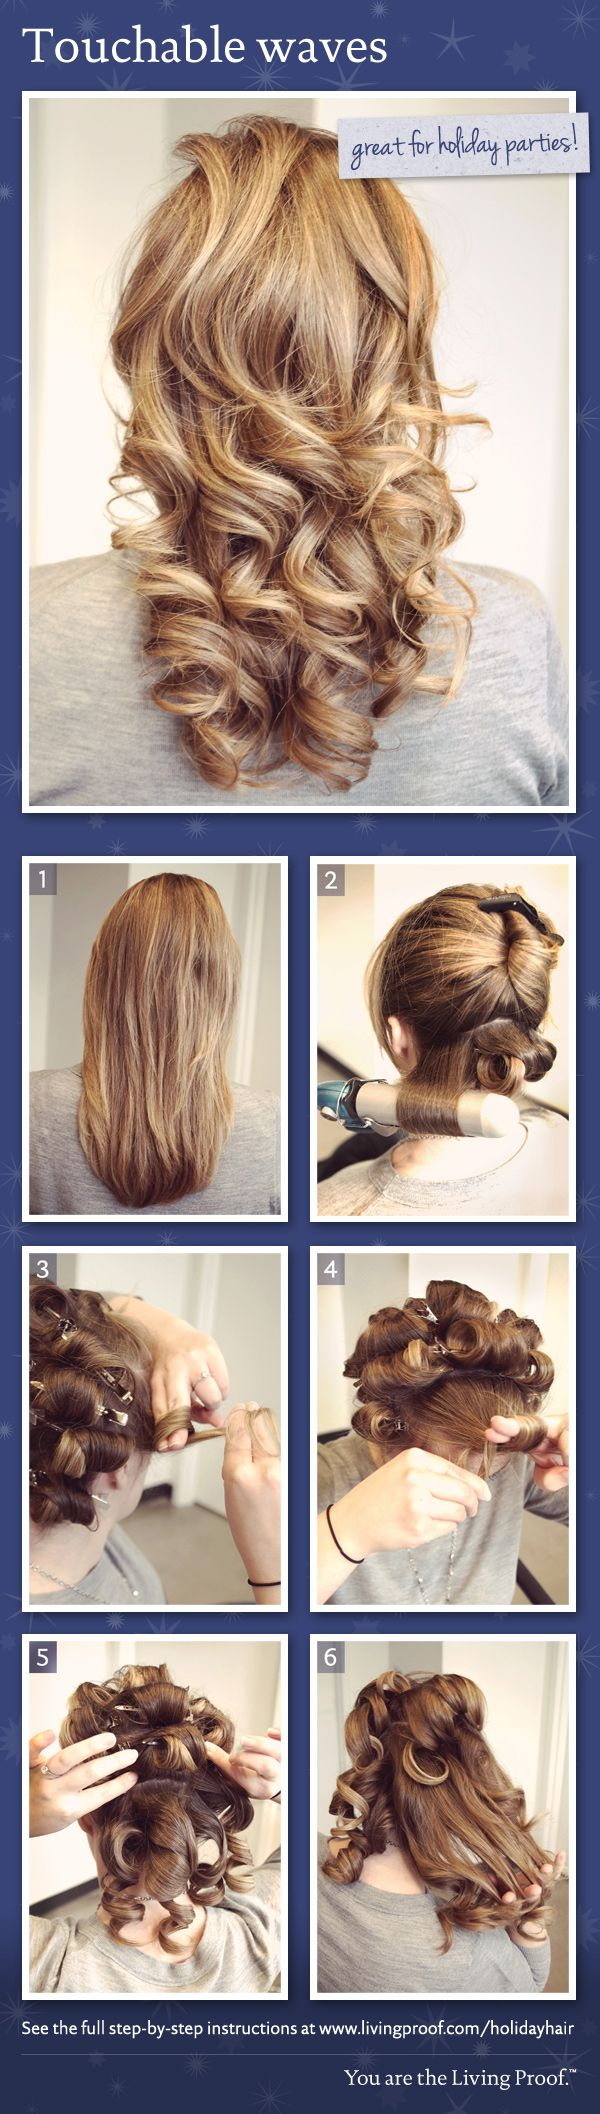 best warkocze images on pinterest braid hairstyles hair looks